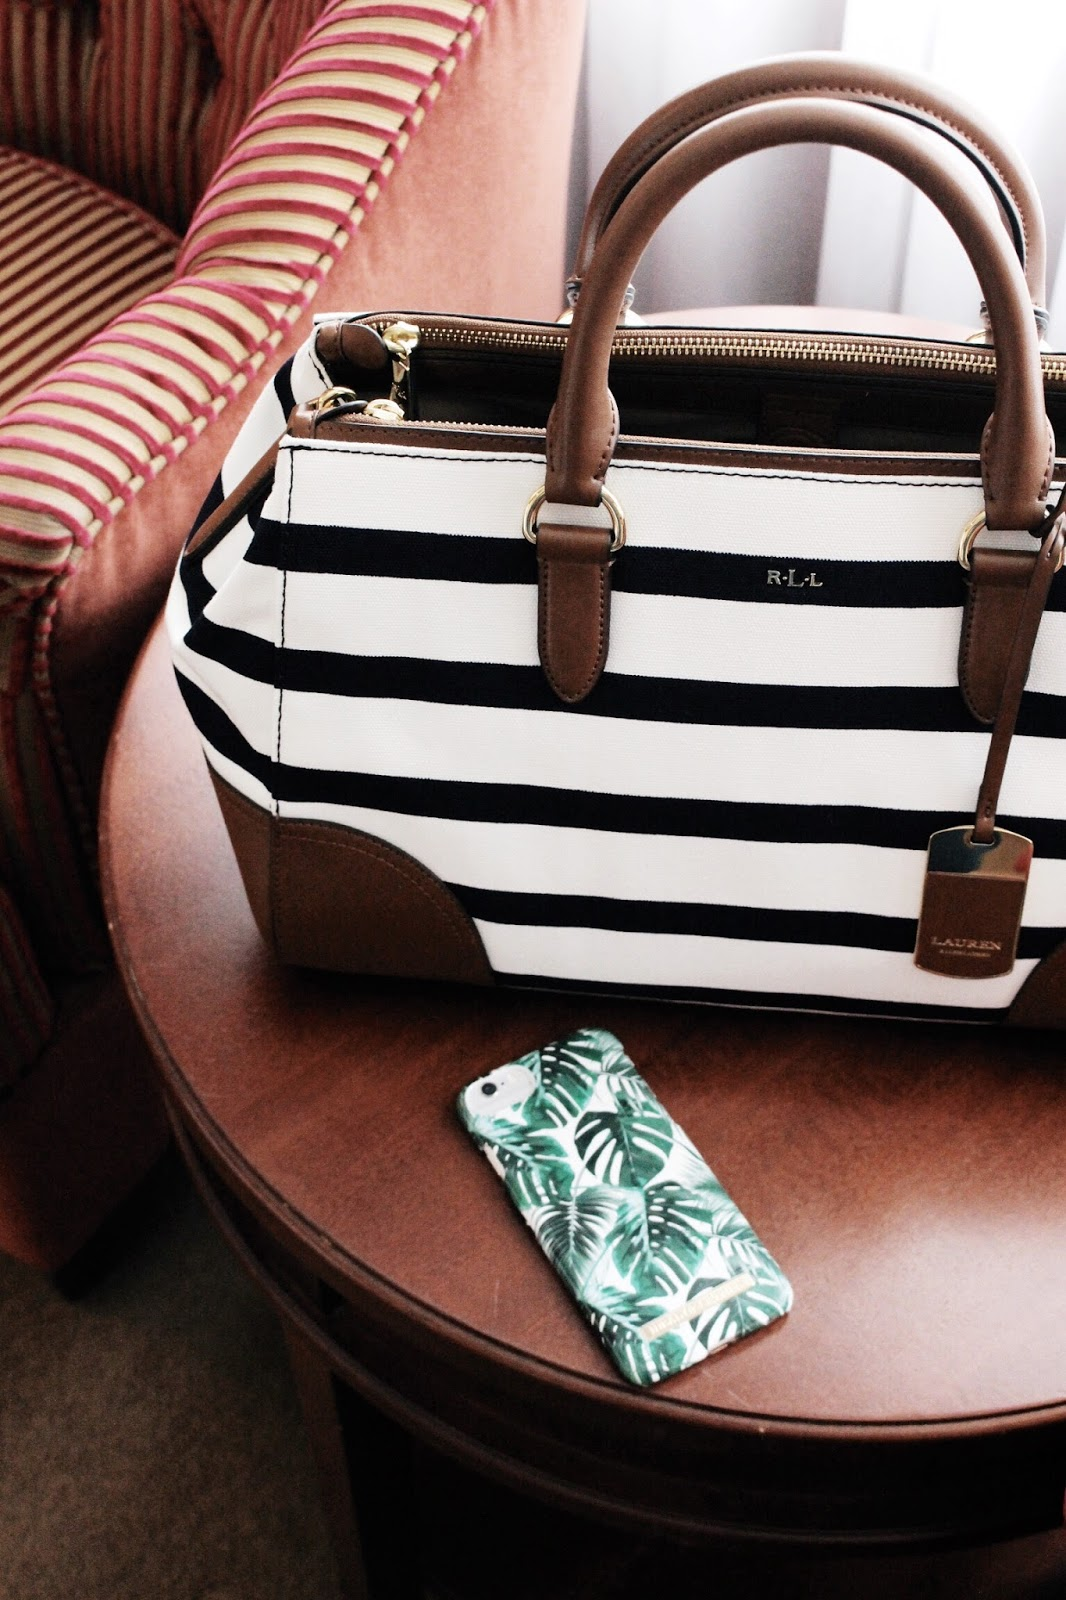 Ralph Lauren Blue Tan White Striped Tote Bag